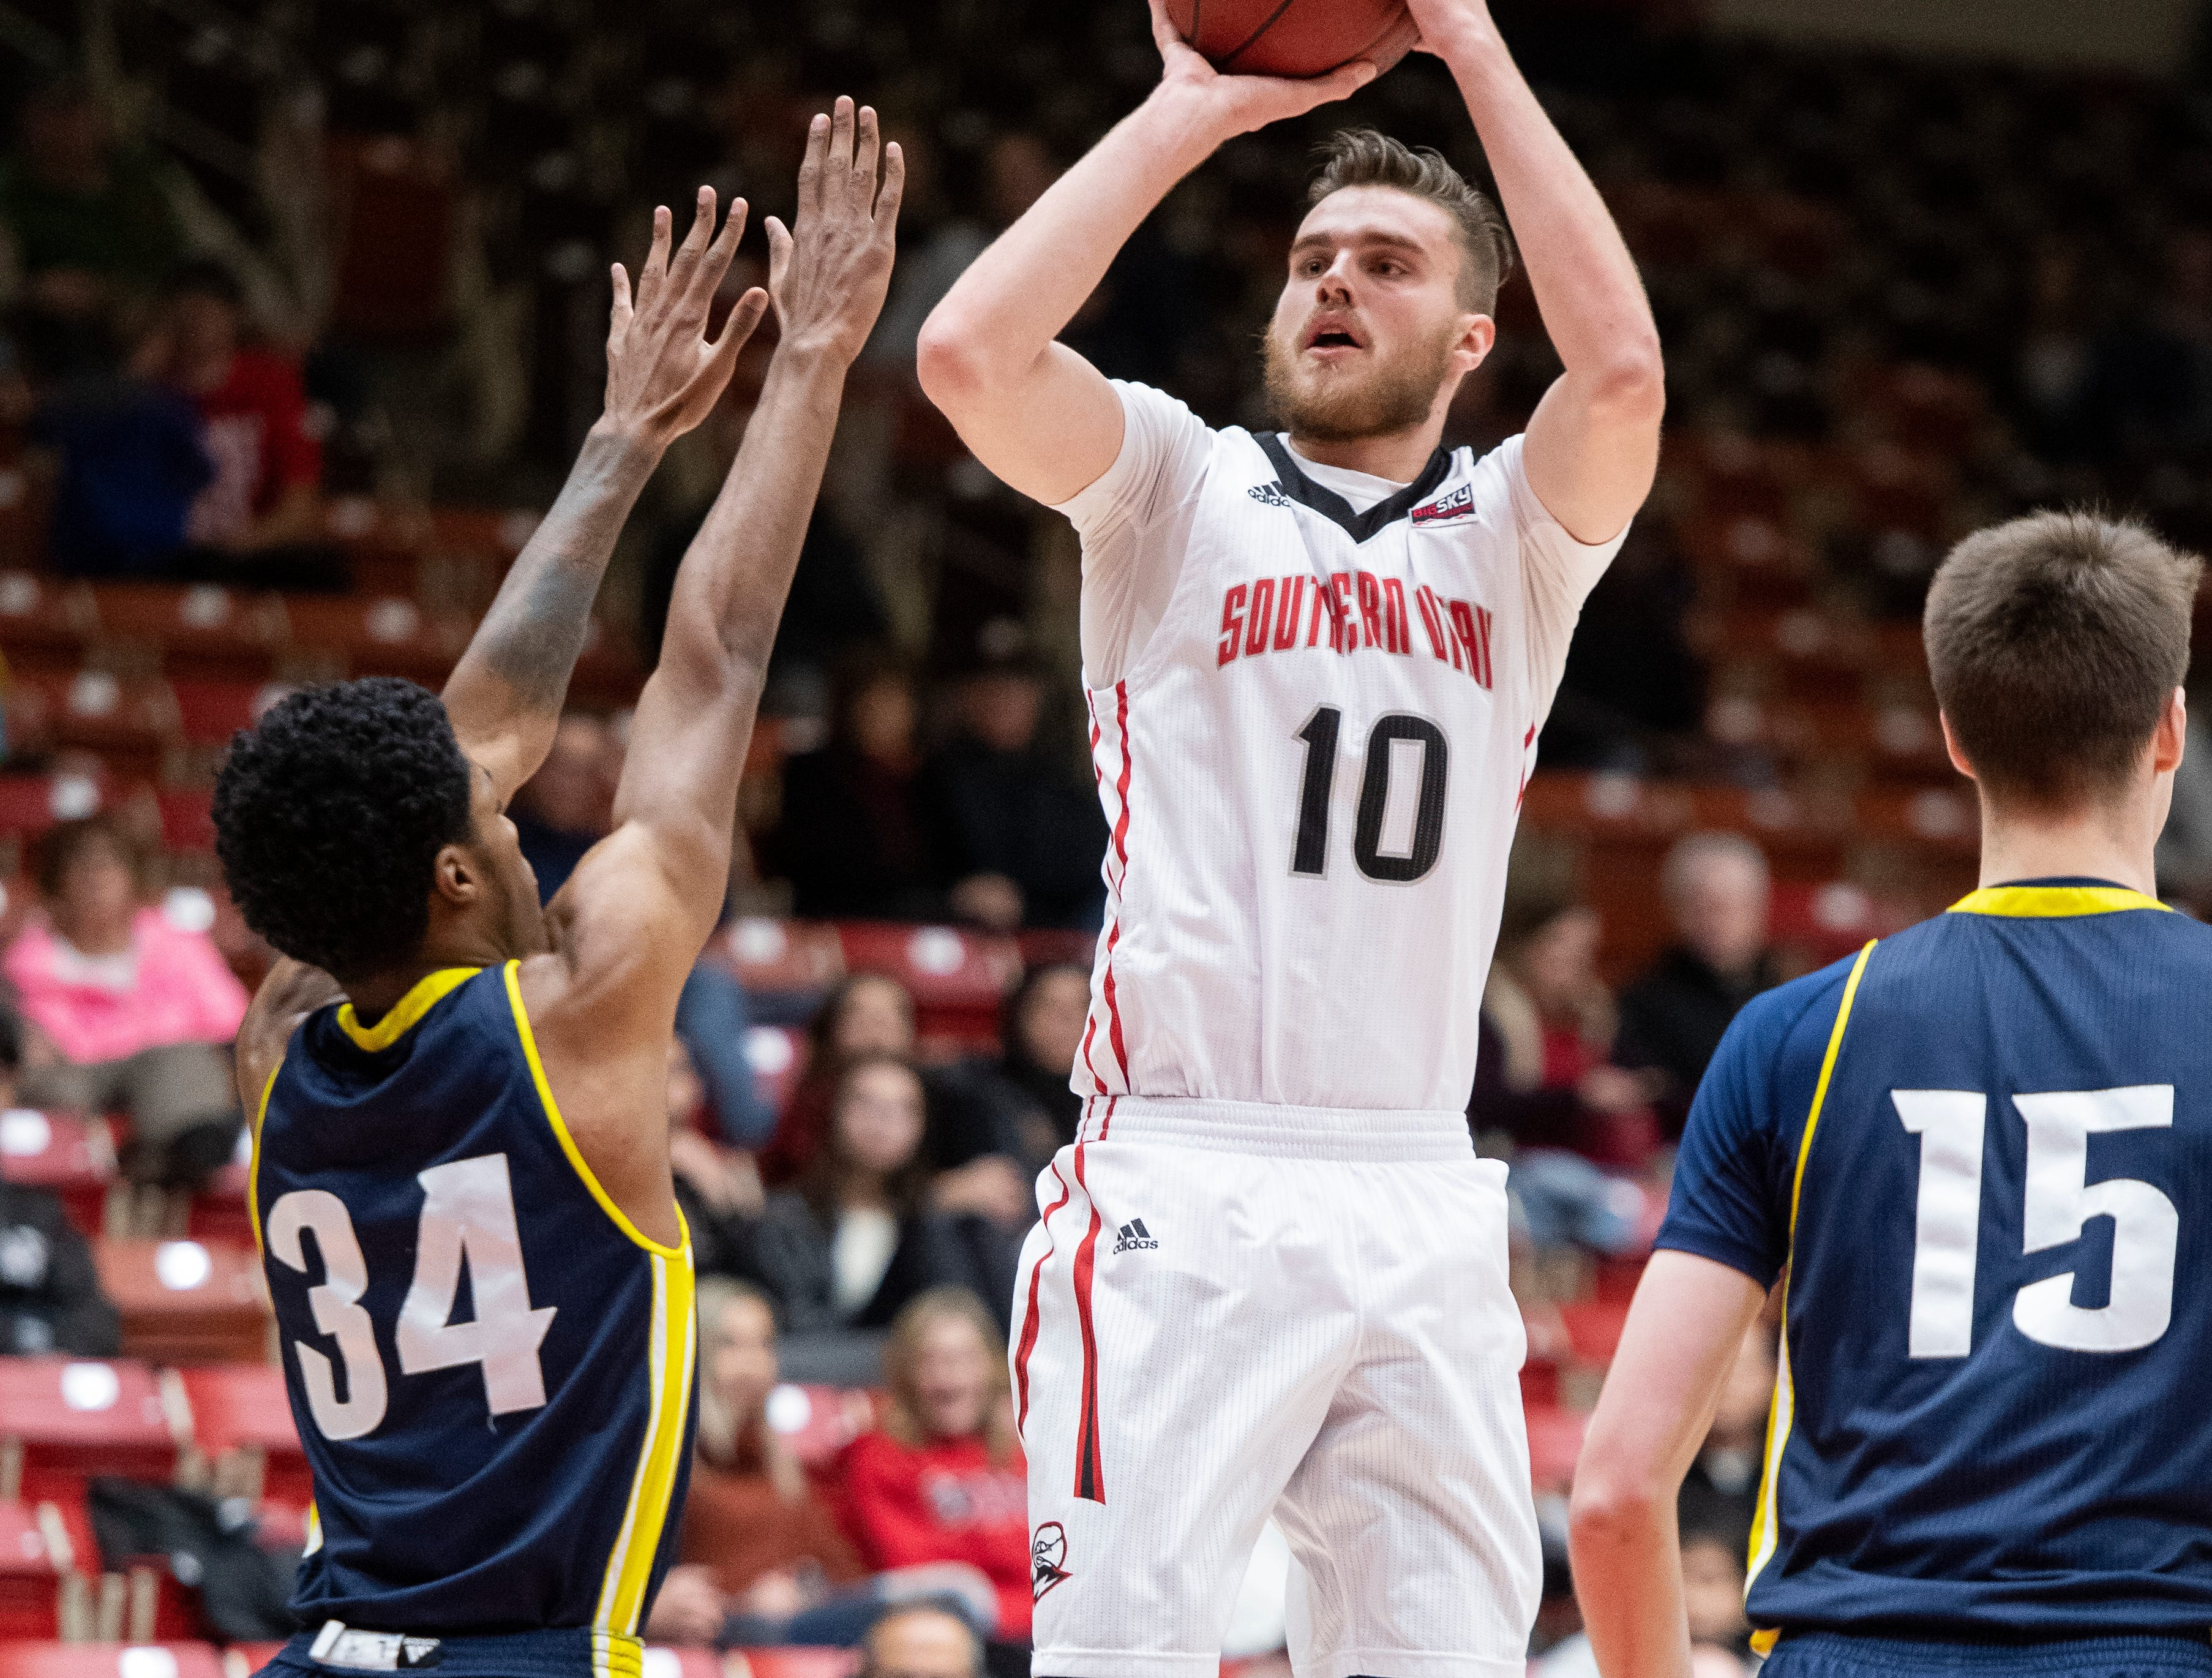 Southern Utah University junior Jacob Calloway (10) sinks a three-point basket against rival Northern Arizona at the America First Event Center Saturday, January 12, 2019. SUU won, 84-82.